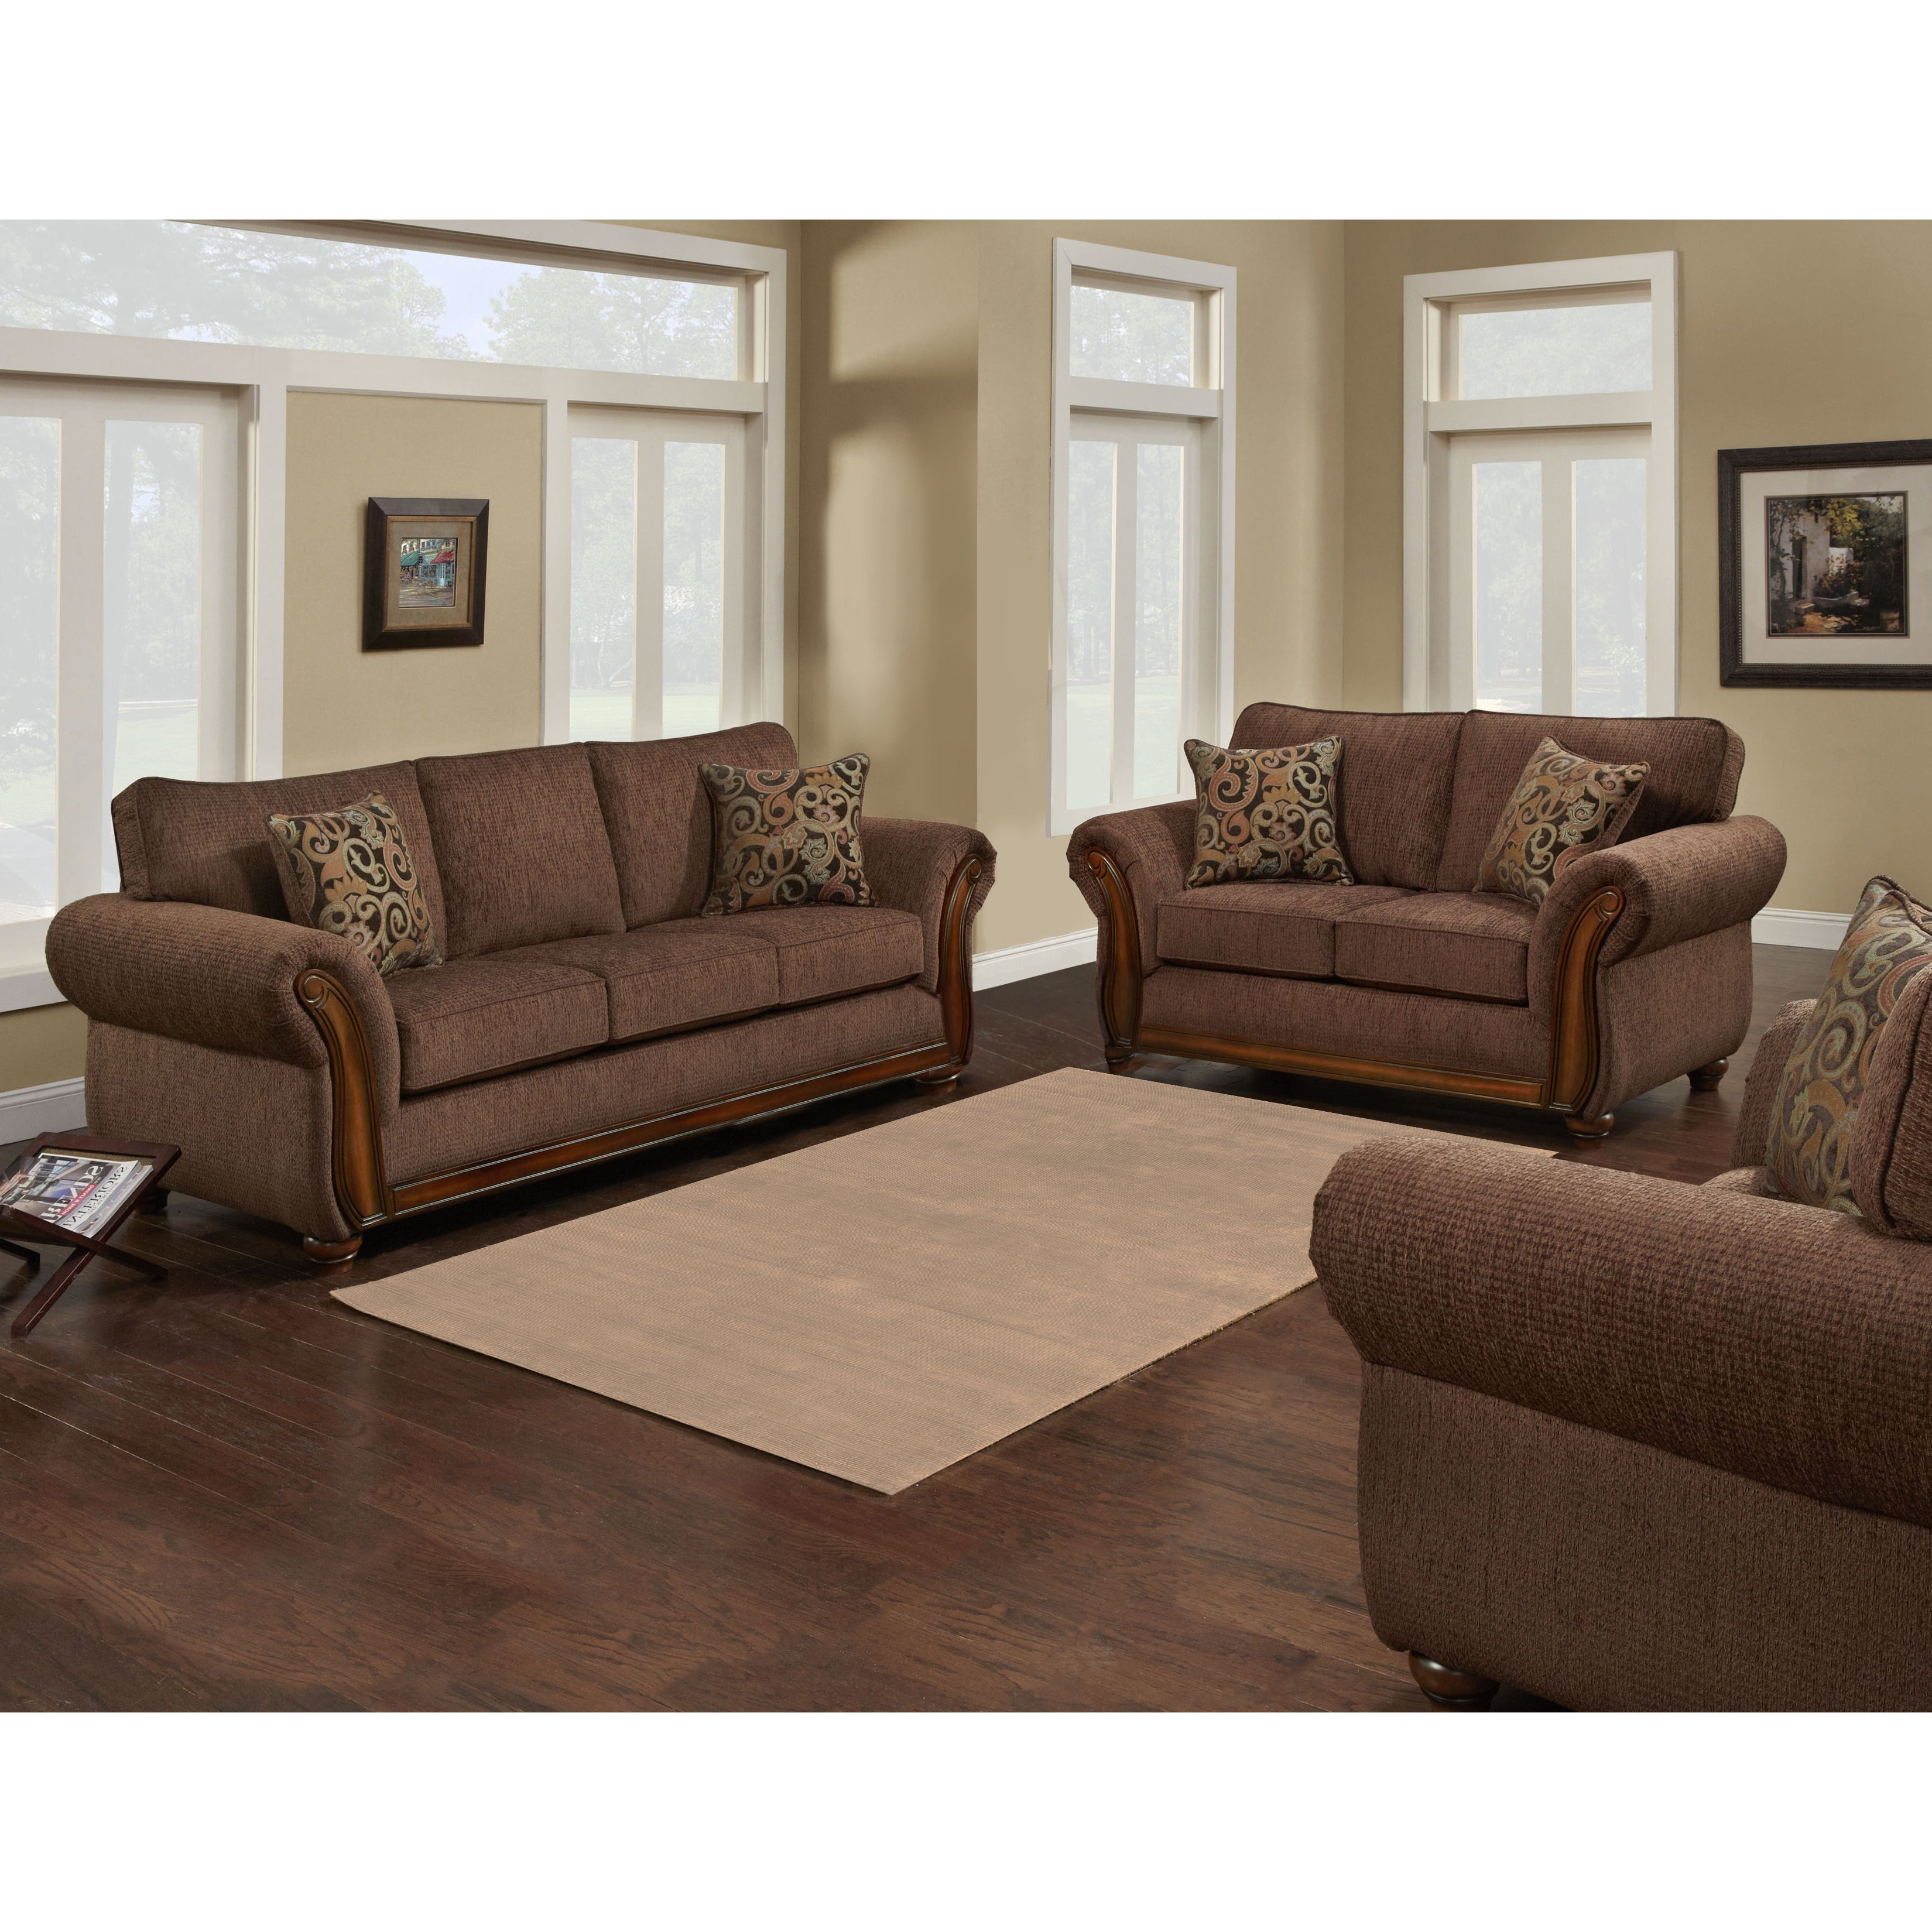 size black of full sets couch layla and cheap set imposing faux loveseat living reclining fantastic pc madison with leather room sableearth uncategorized inside fabric sofa for